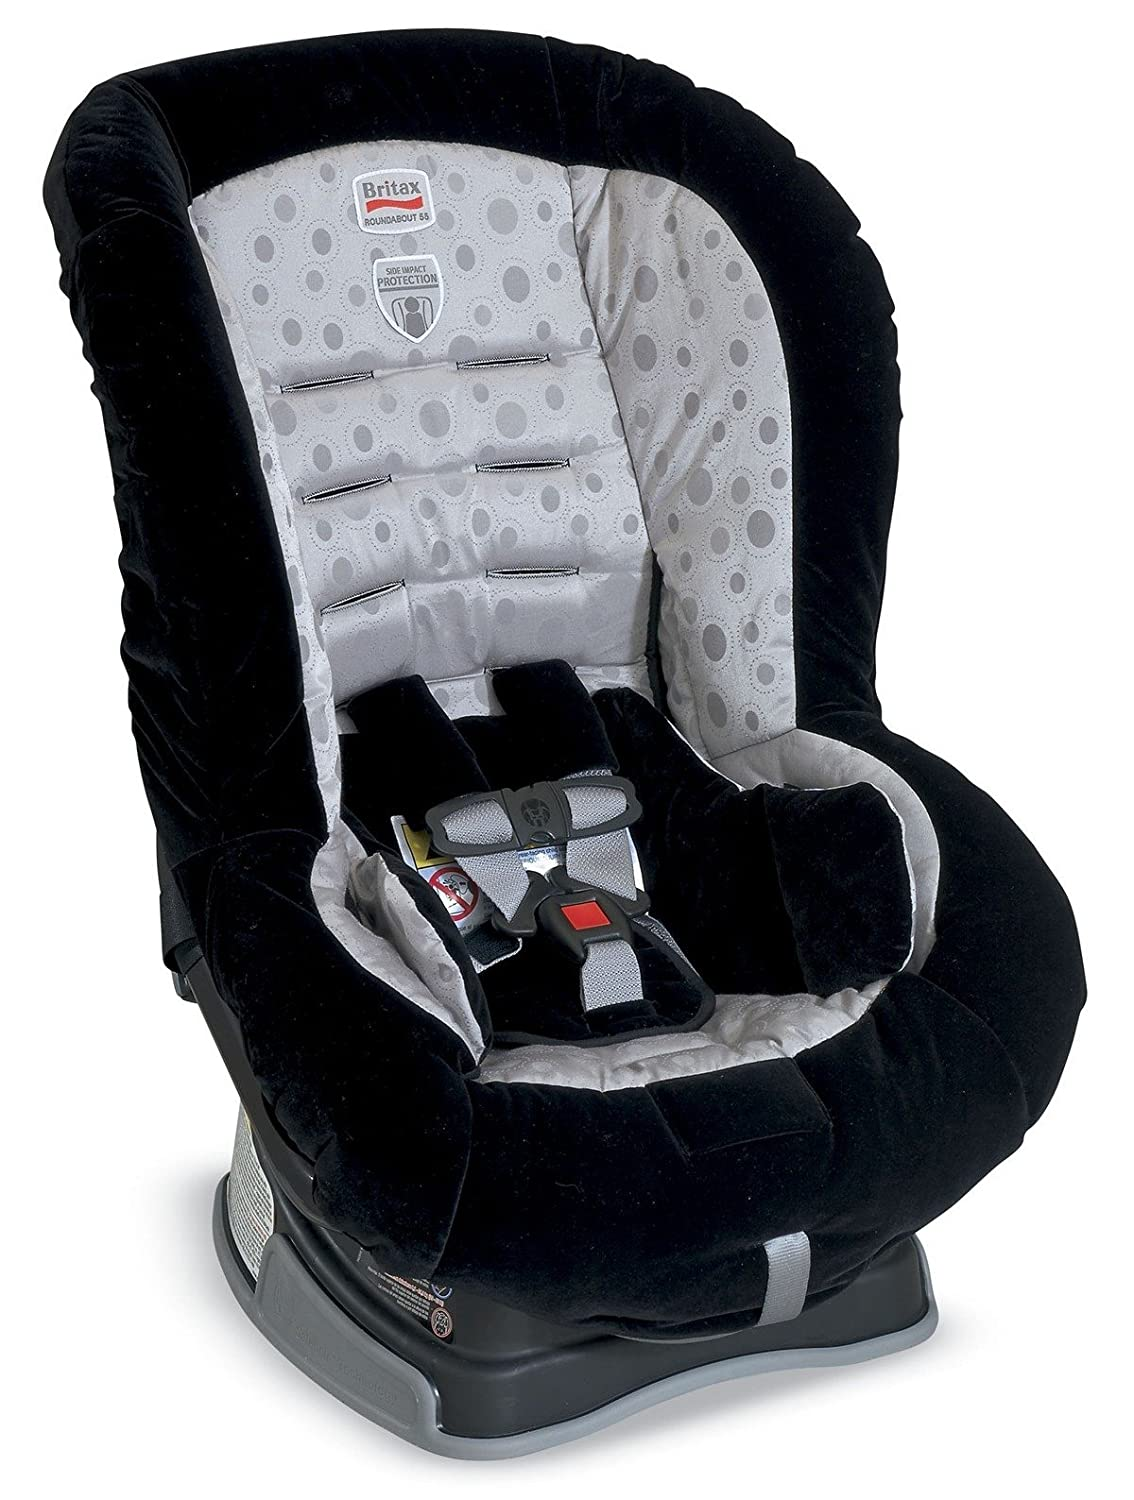 britax marathon car seat weight limit. Black Bedroom Furniture Sets. Home Design Ideas